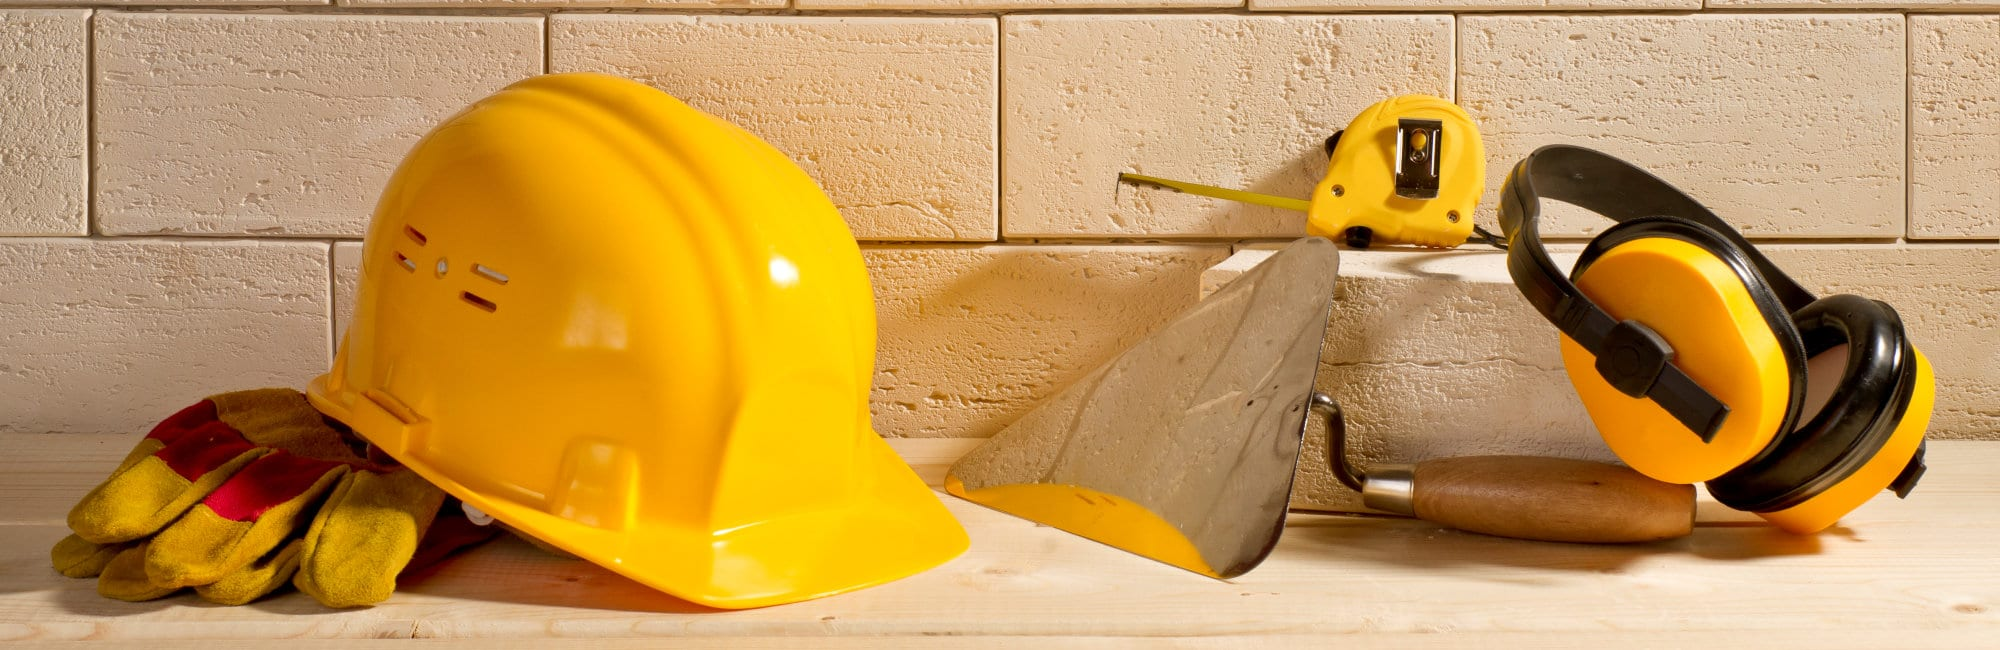 beige brick background, yellow helmet and trowel on a wooden floor